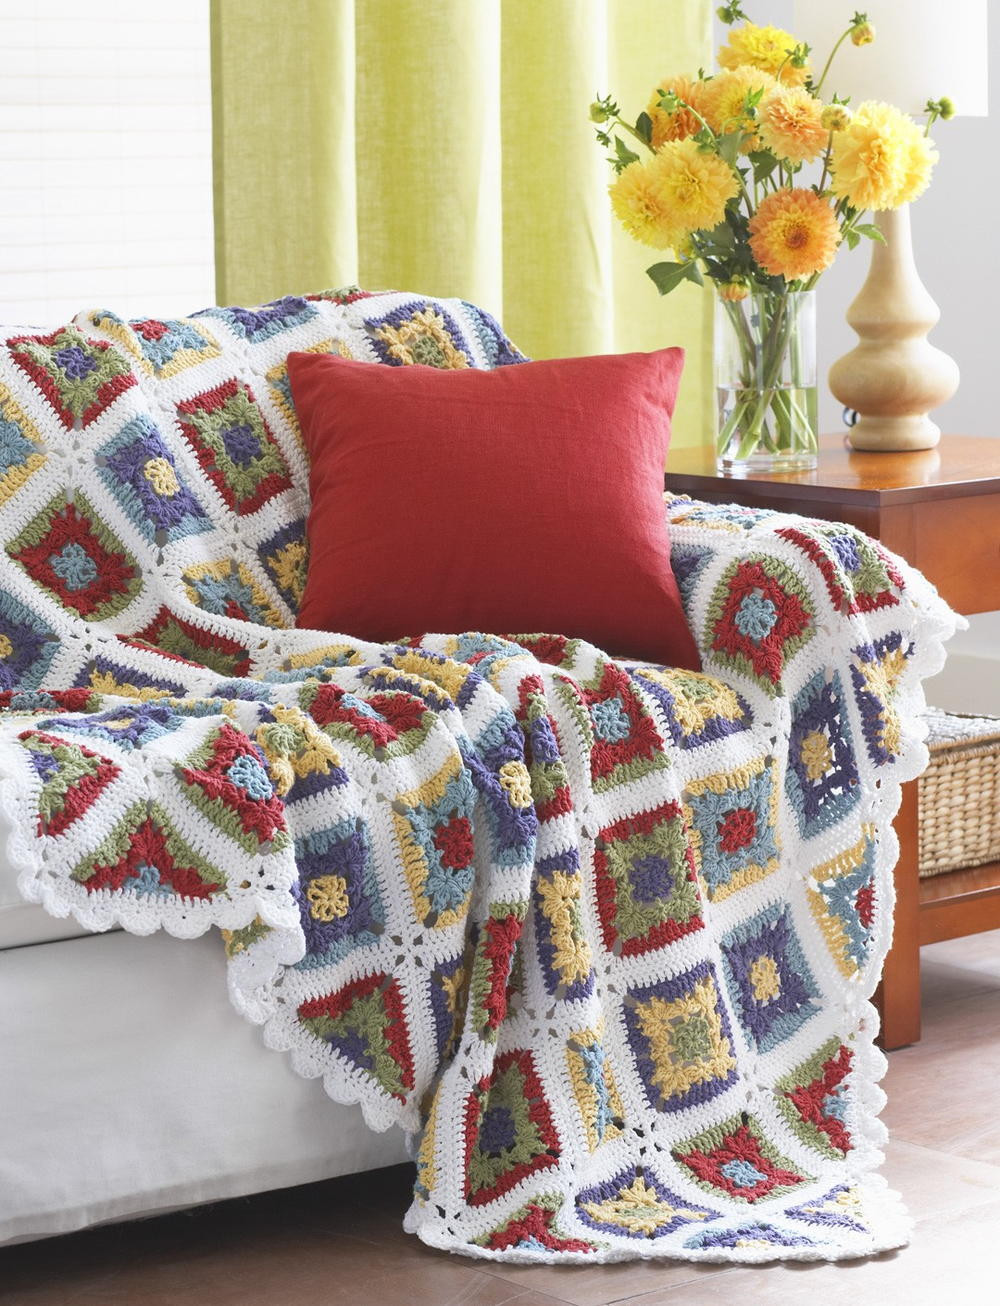 Crochet Blanket Designs Beautiful Country Charm Crochet Blanket Pattern Of Incredible 42 Photos Crochet Blanket Designs